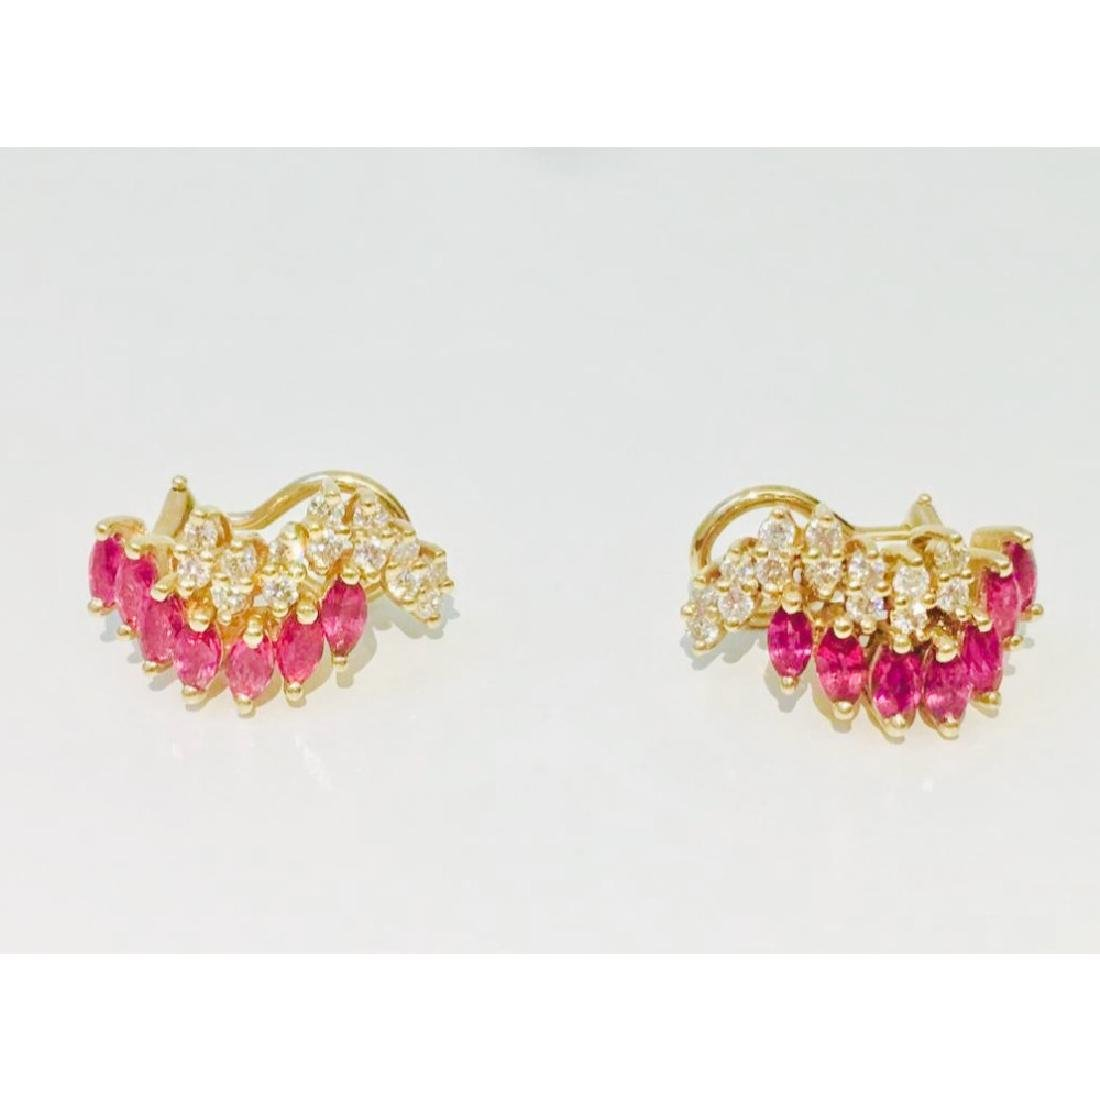 14K gold. 2.4 ct Ruby and Diamond Earrings & Ring set - 3